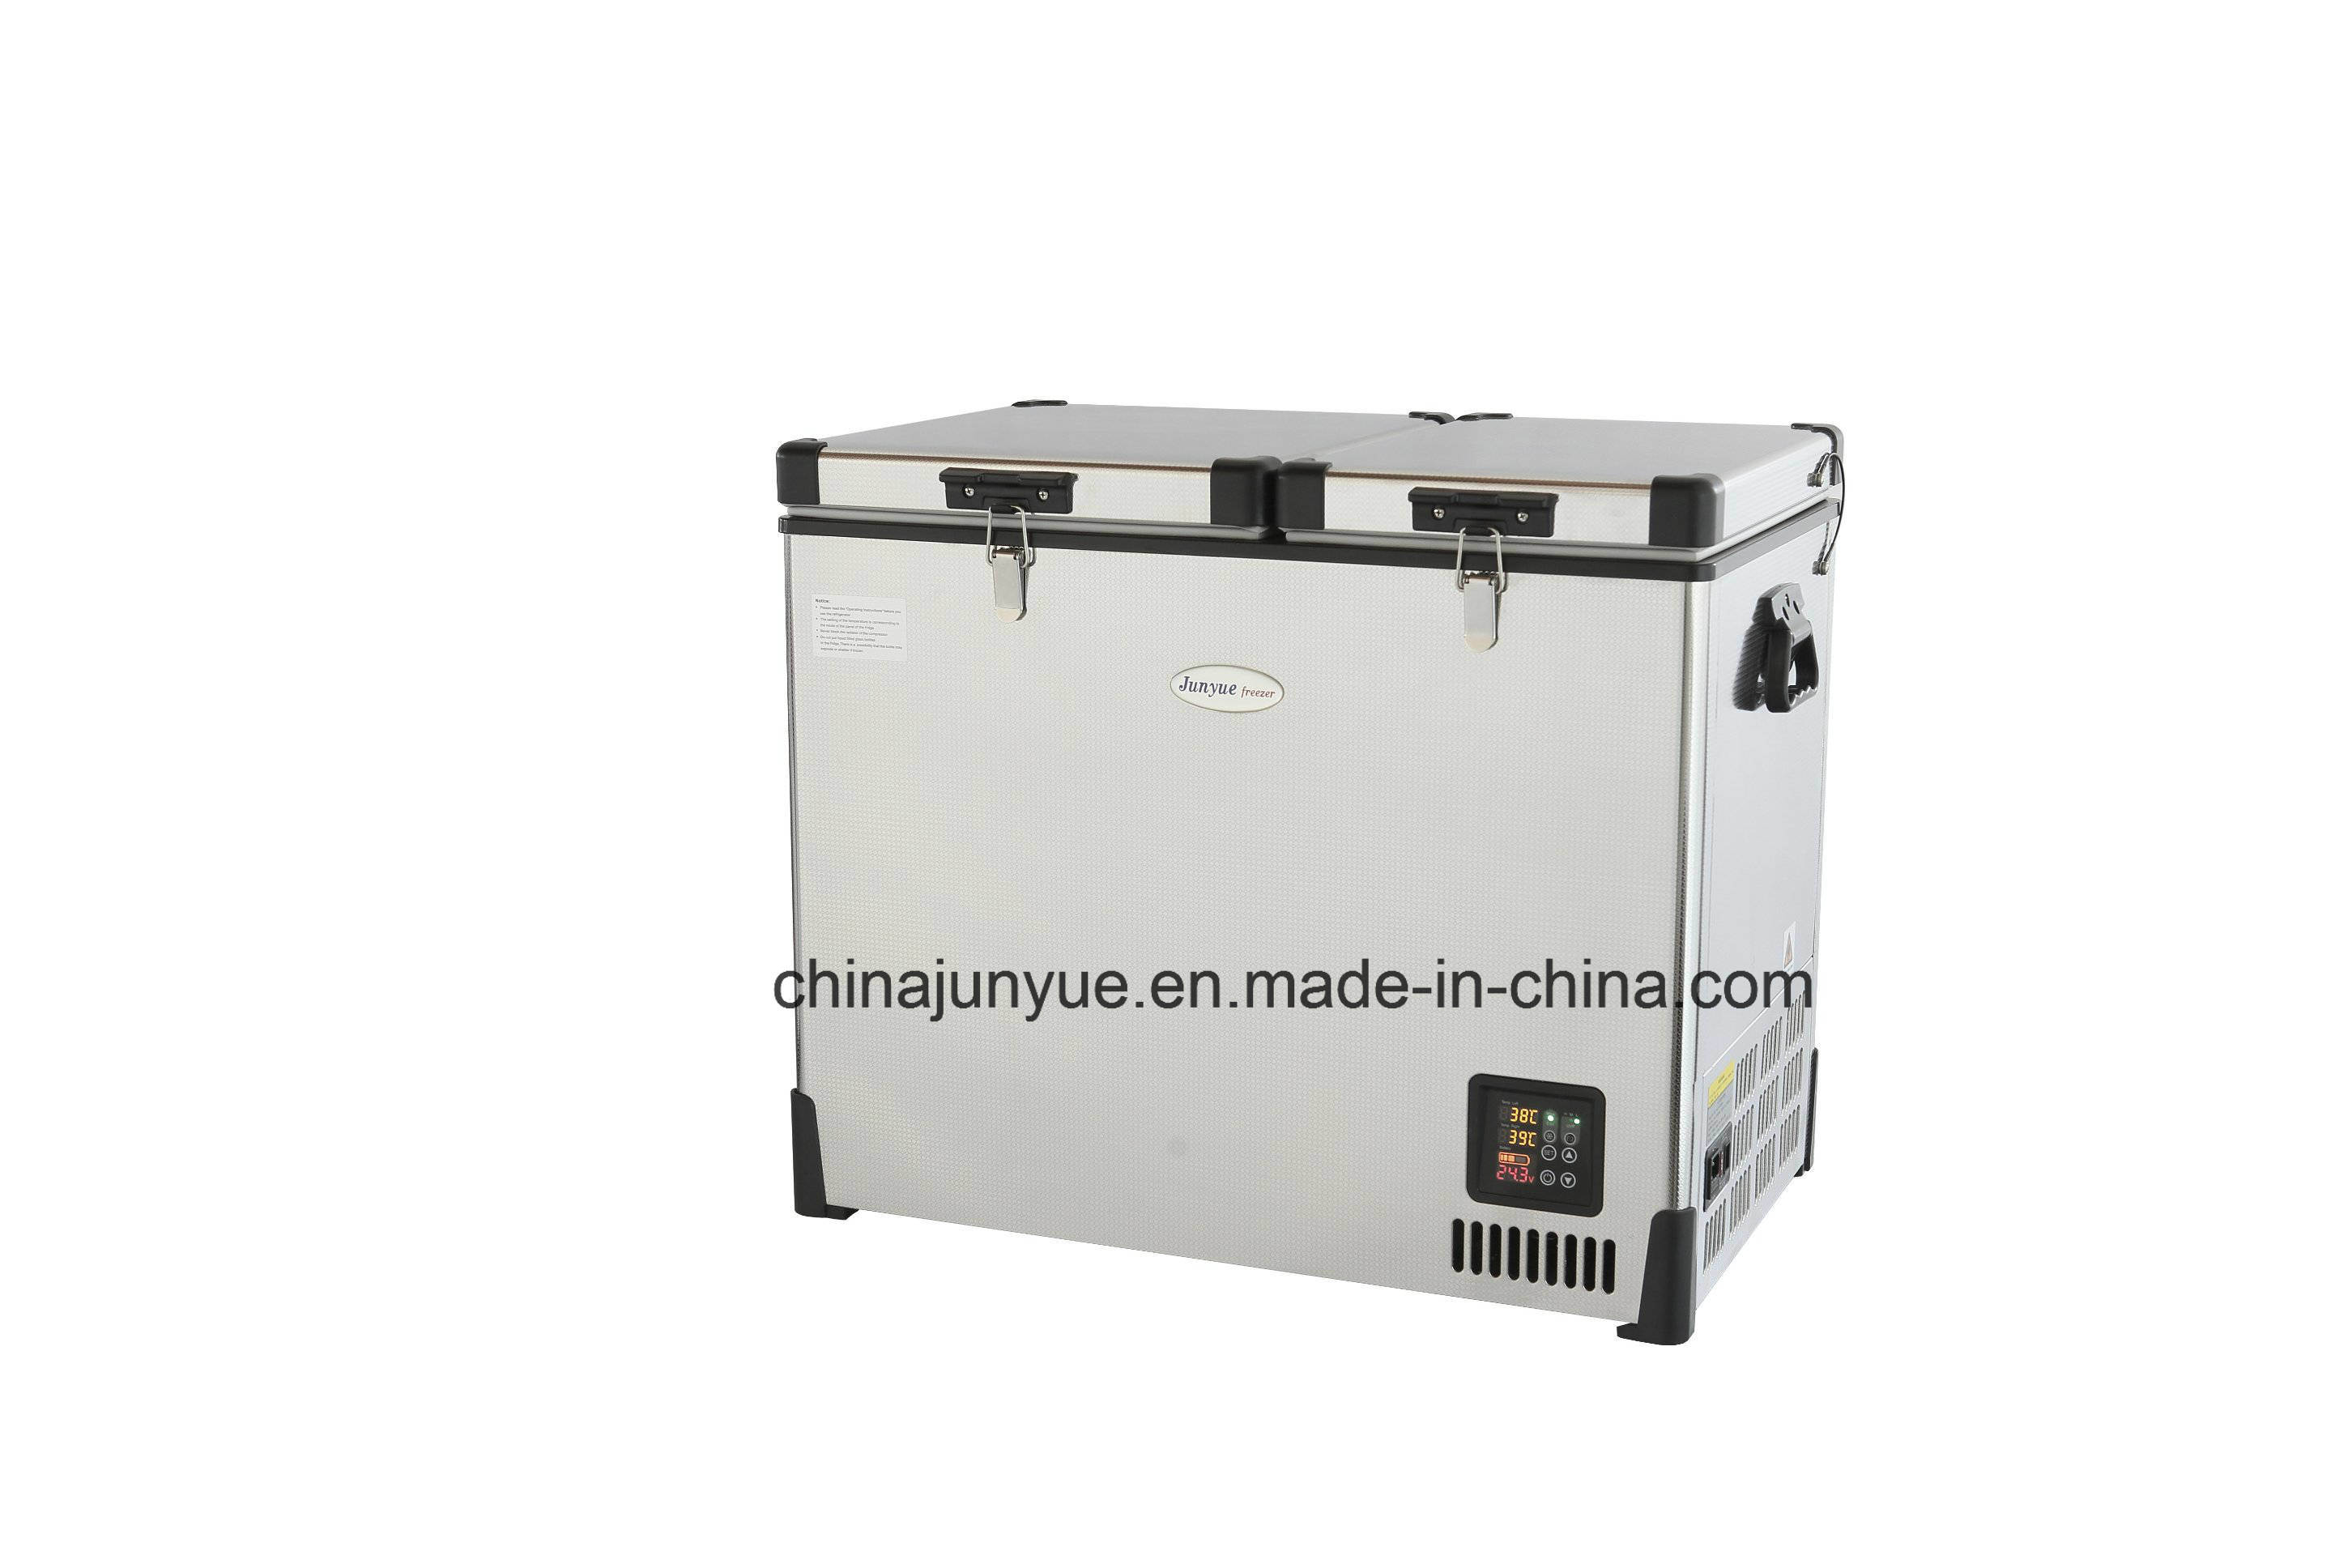 Scd-69L 12/24V DC Stainless Steel Doubletemperature Refrigerators Flat Bottom